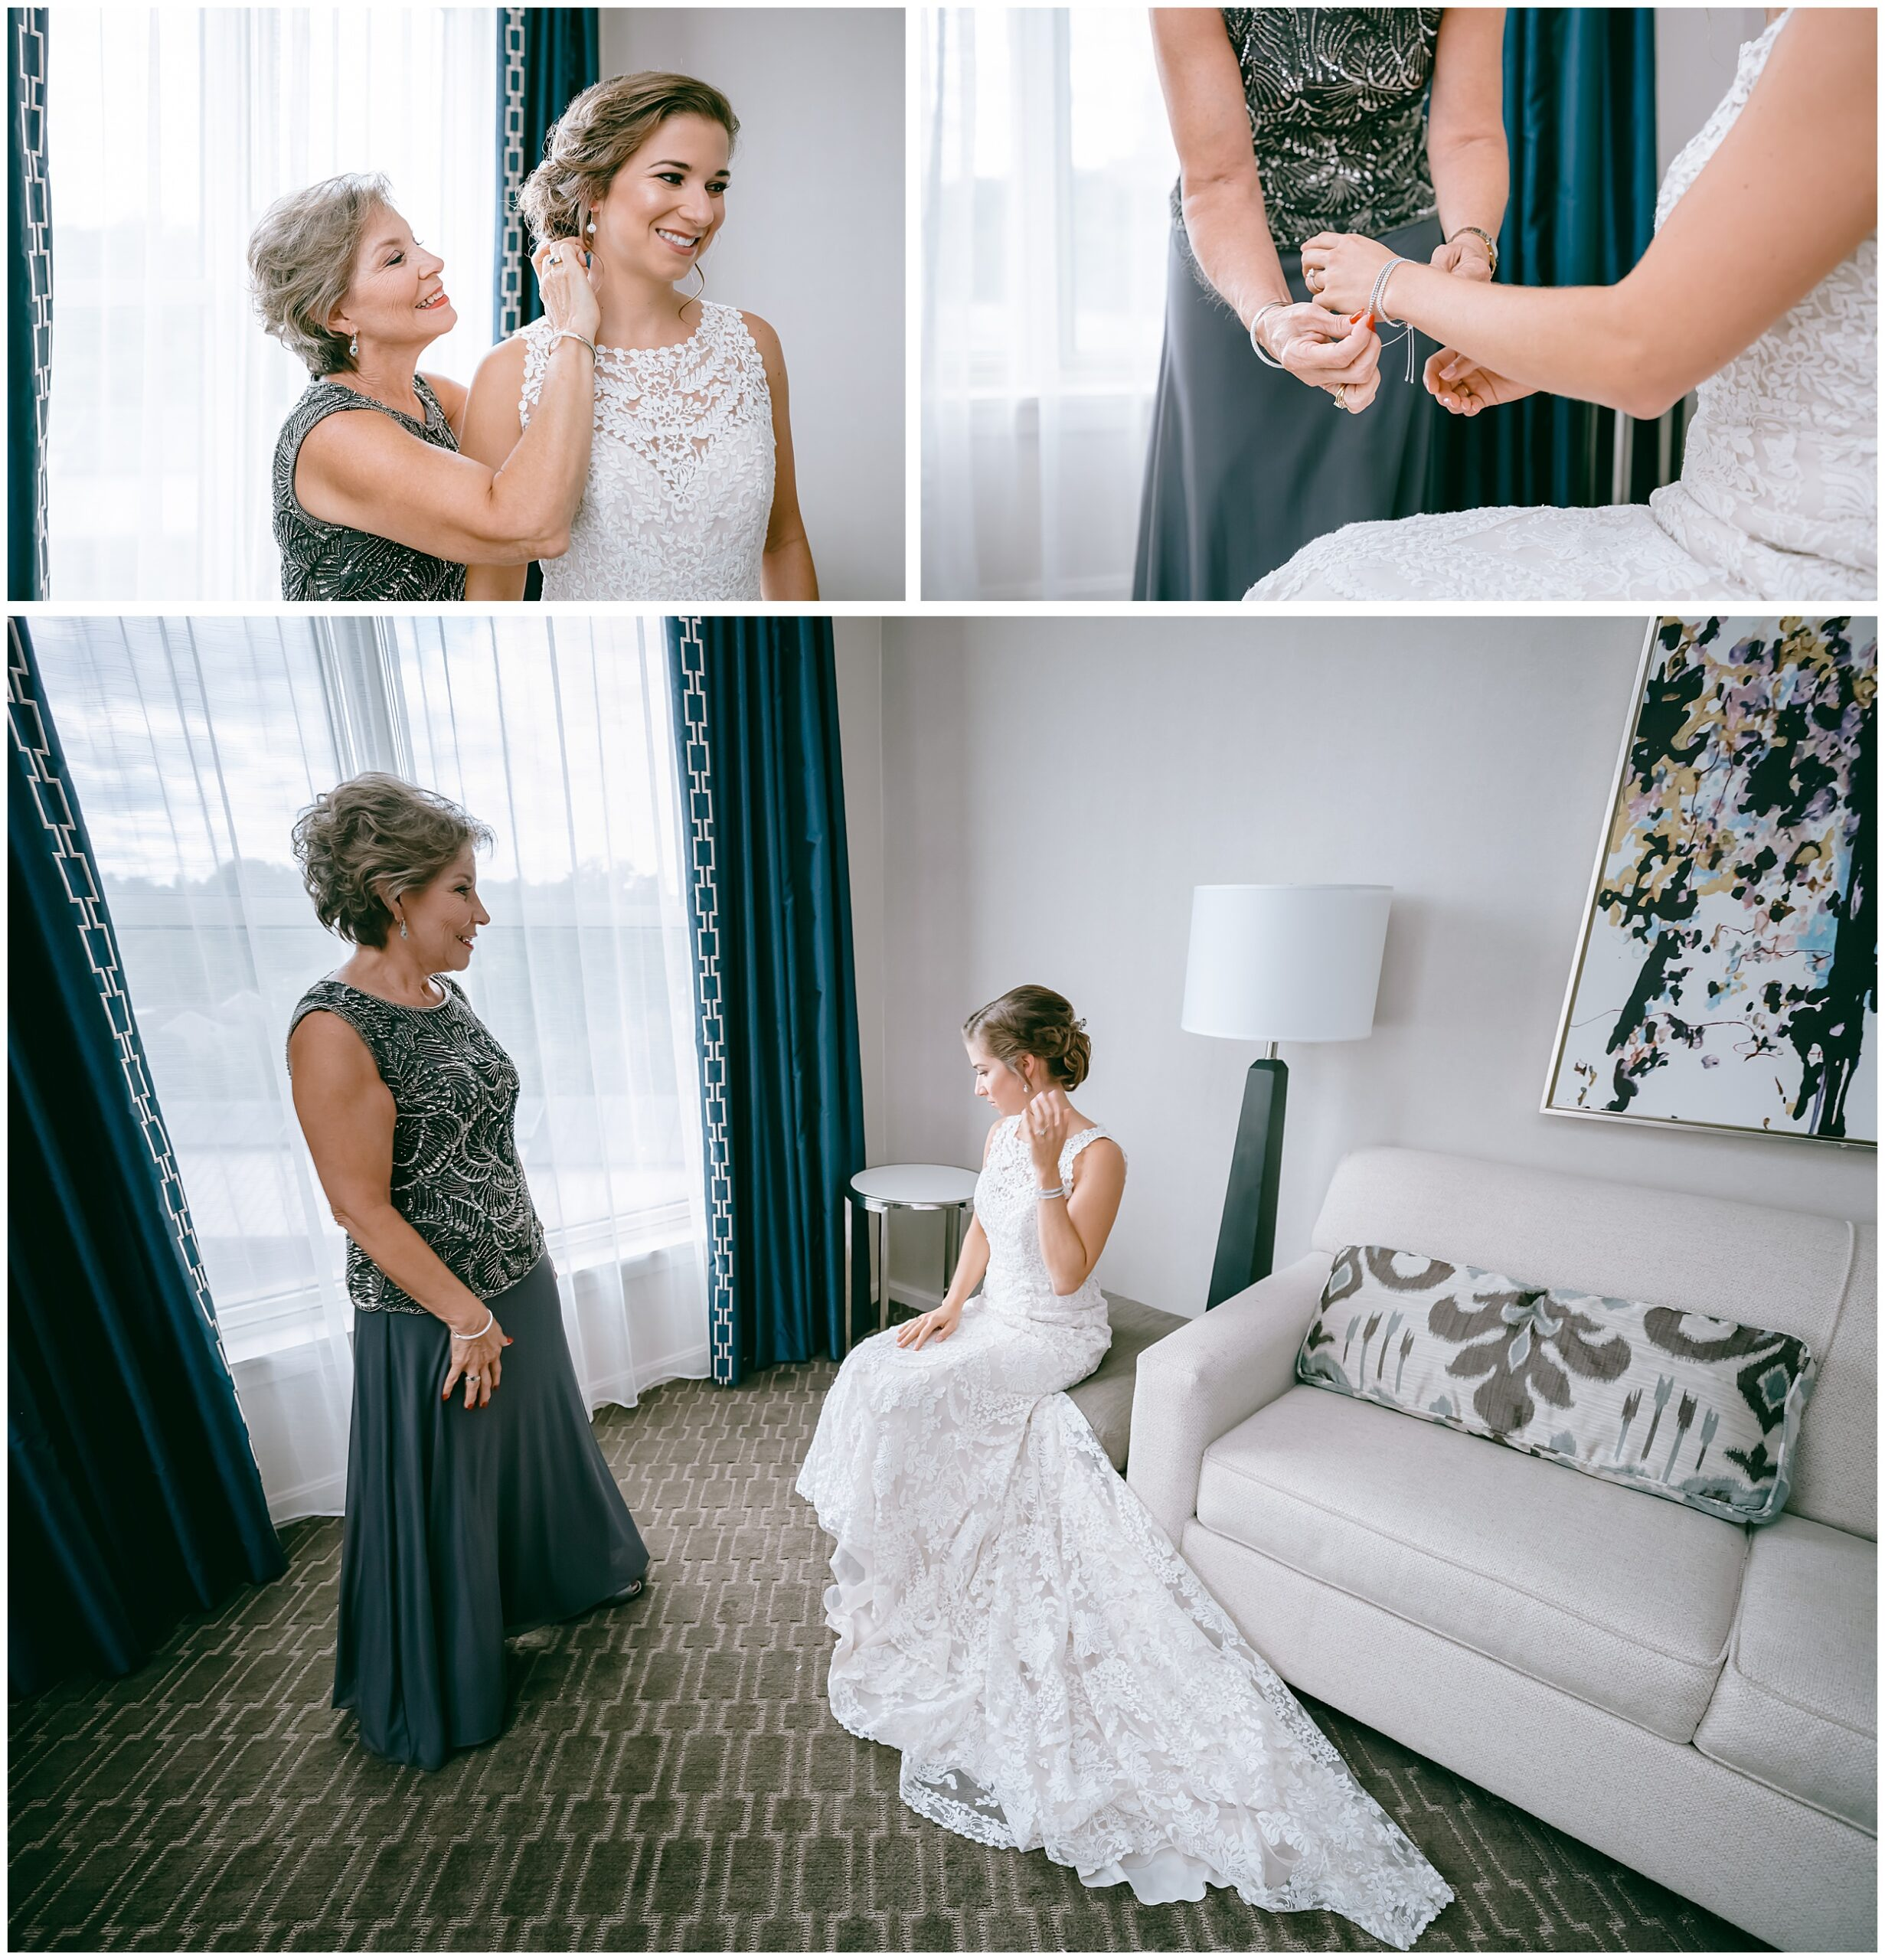 bride-getting-dressed-wedding-mother